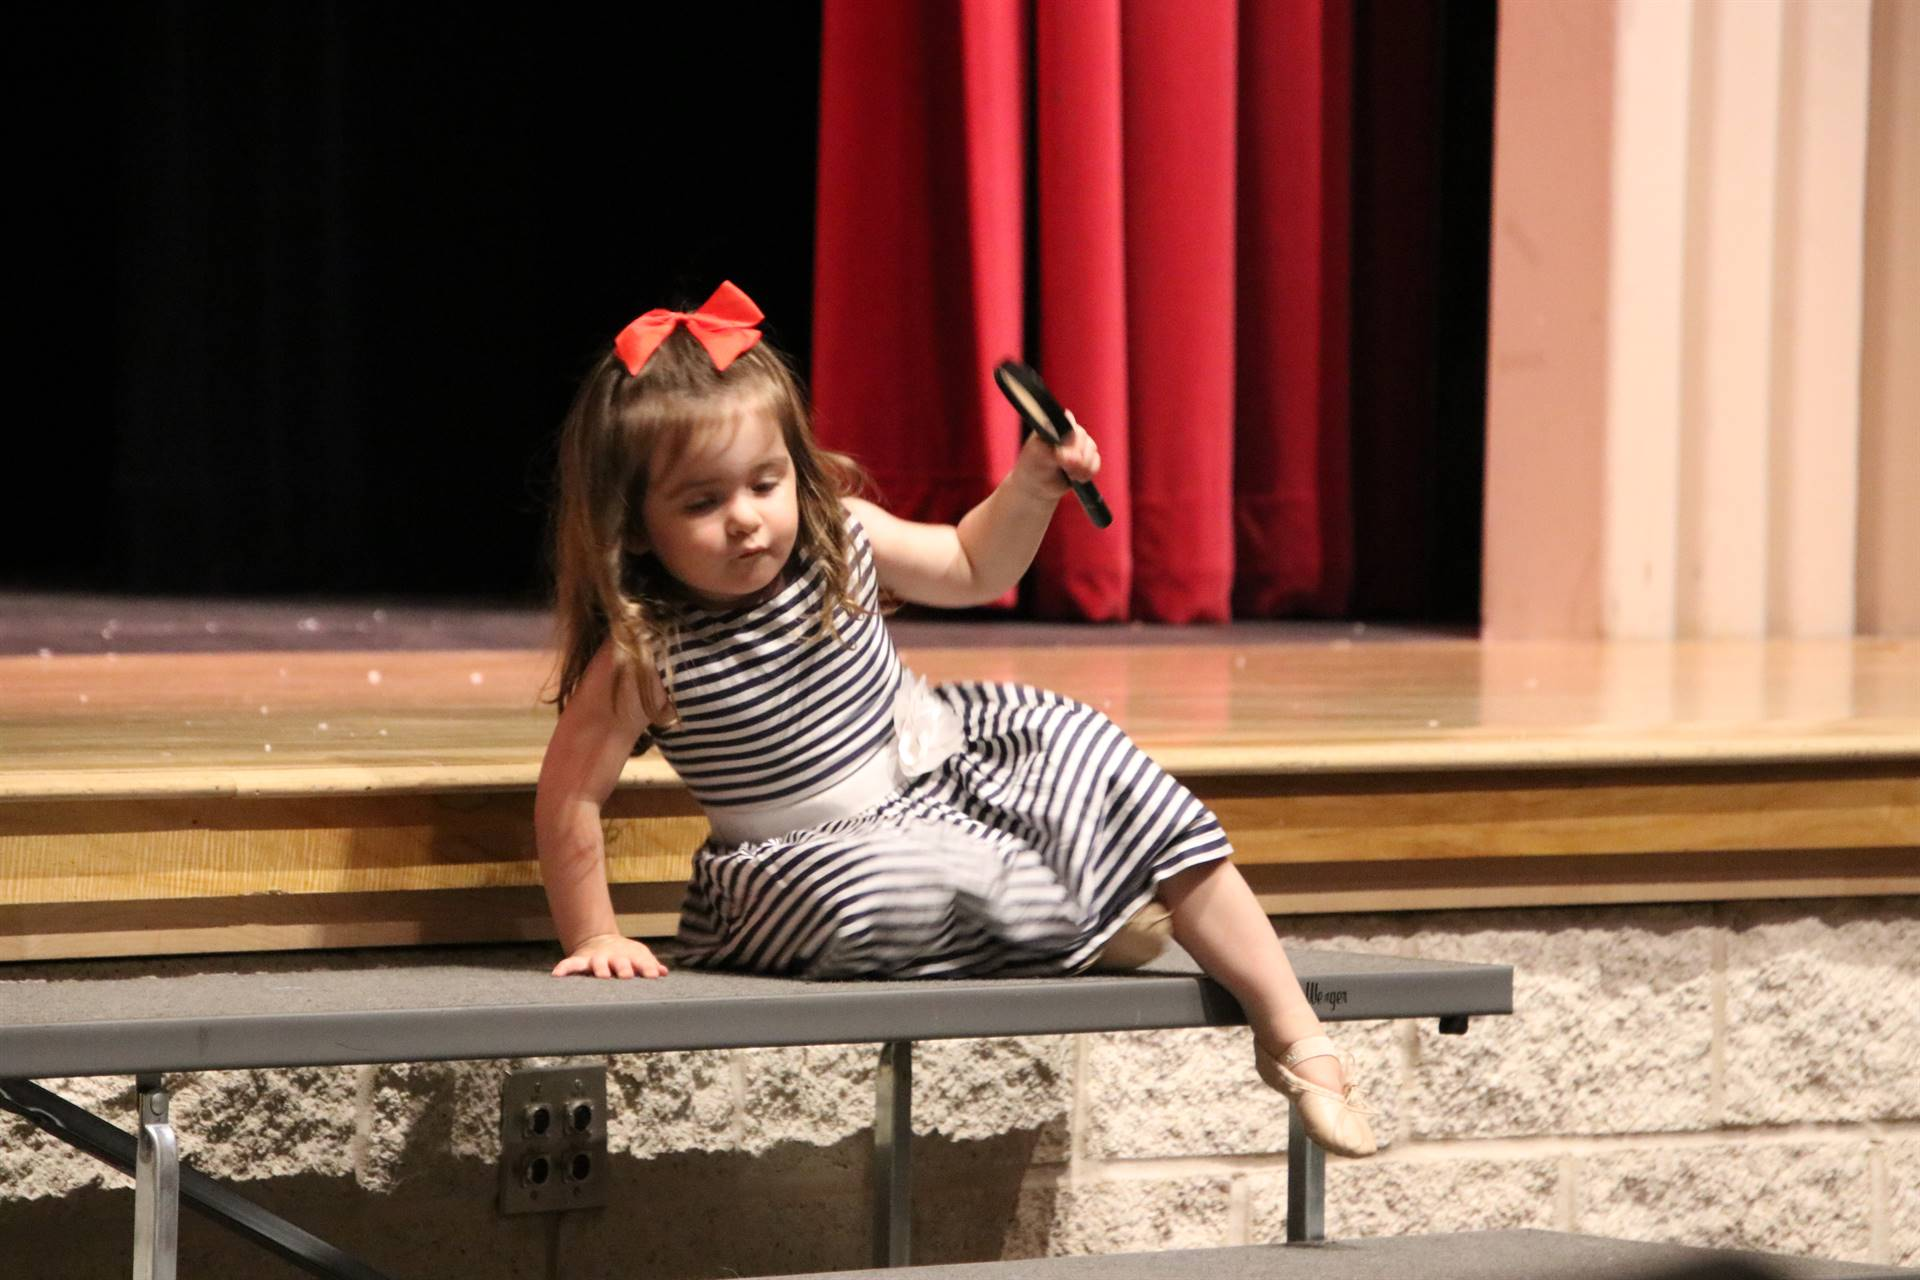 Dr. O'Reilly's daughter climbing off the stage